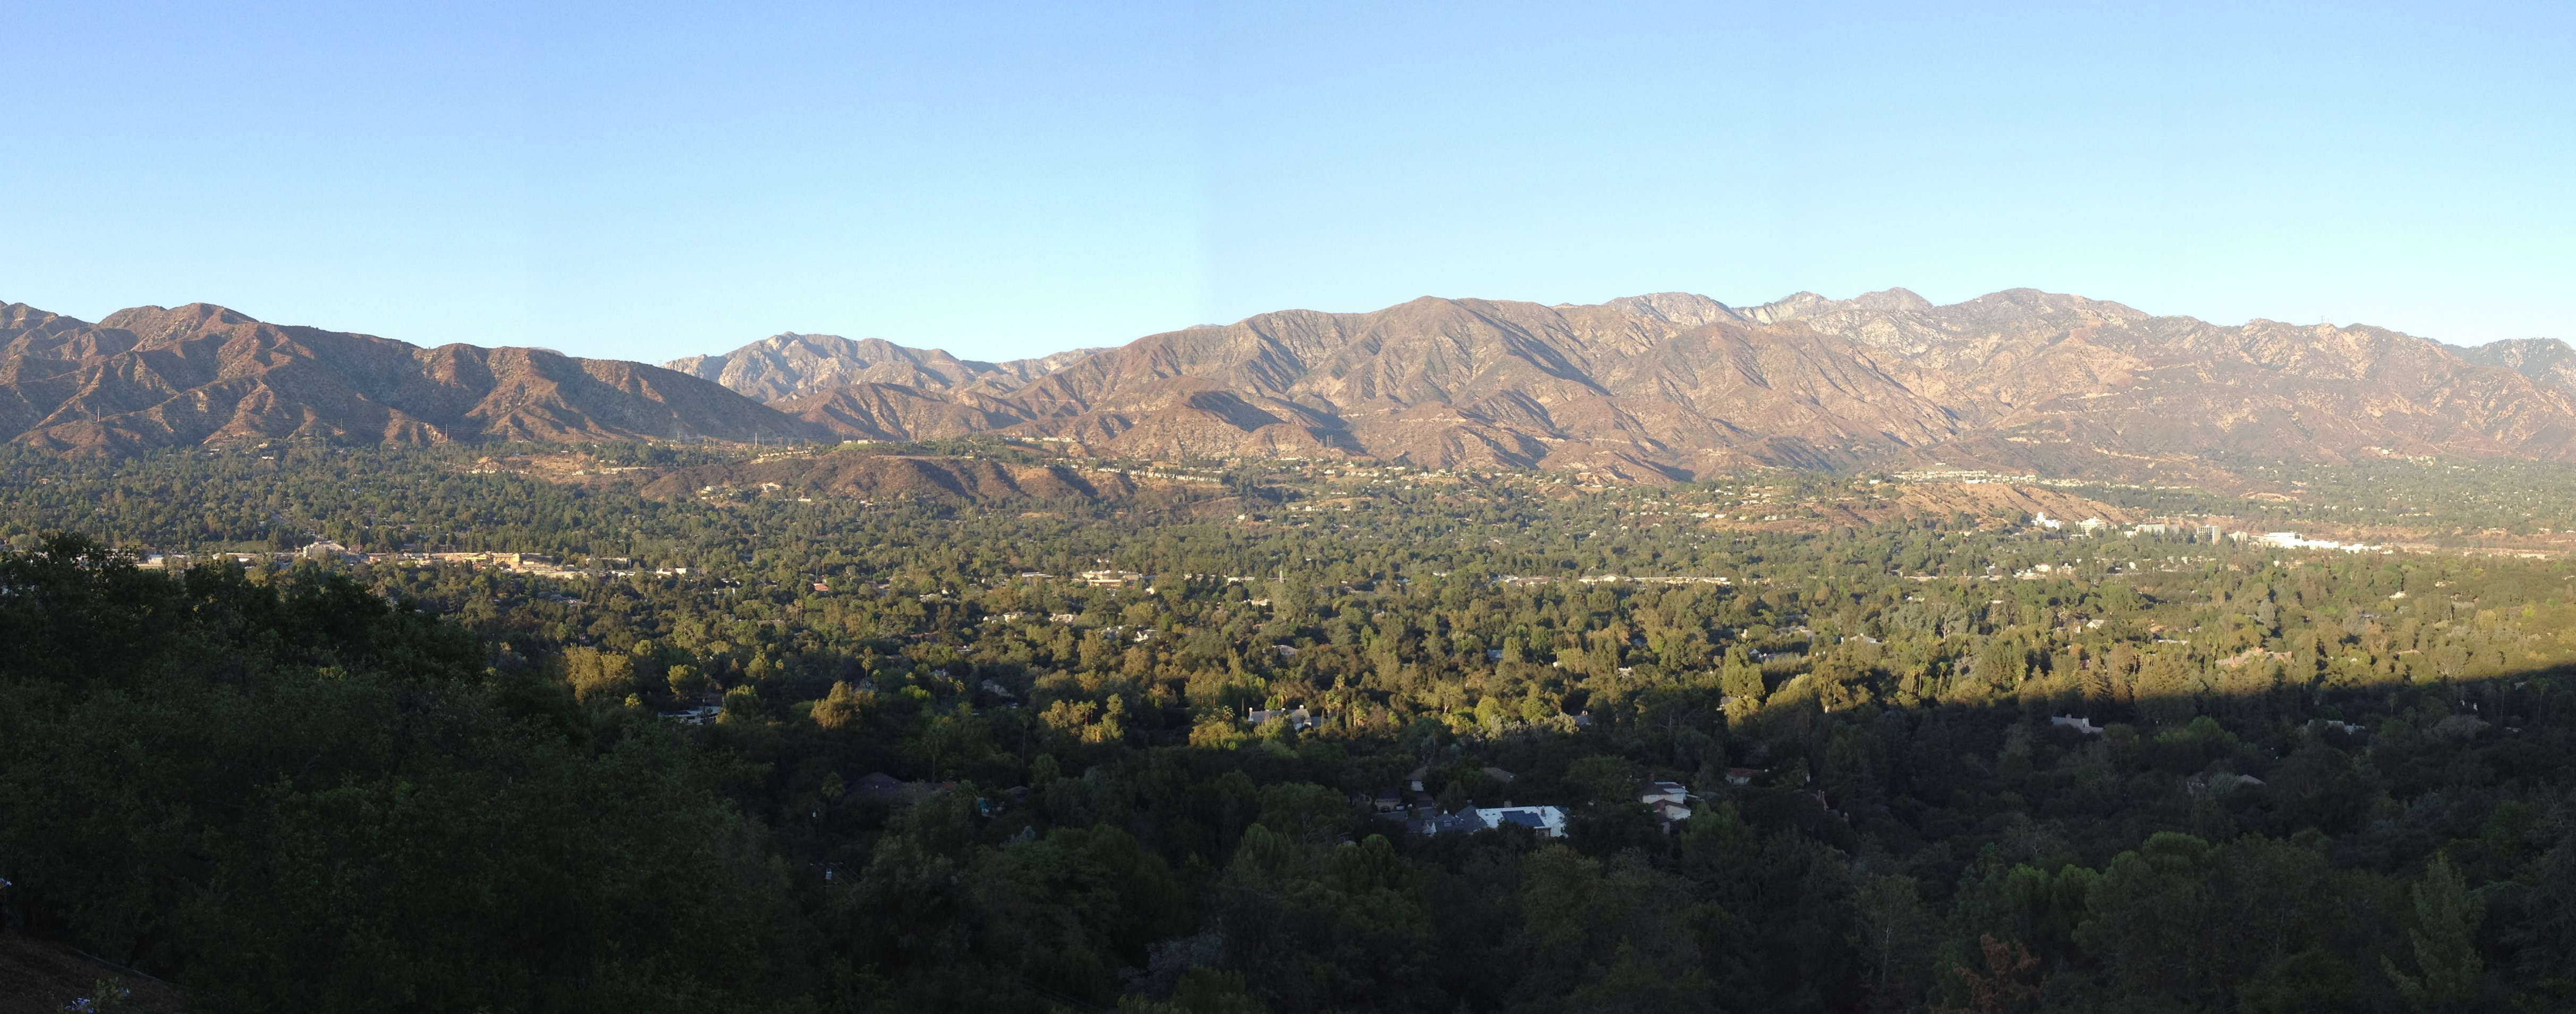 Panoramic view of San Gabriel Mountains from La Canada Flintridge, California.